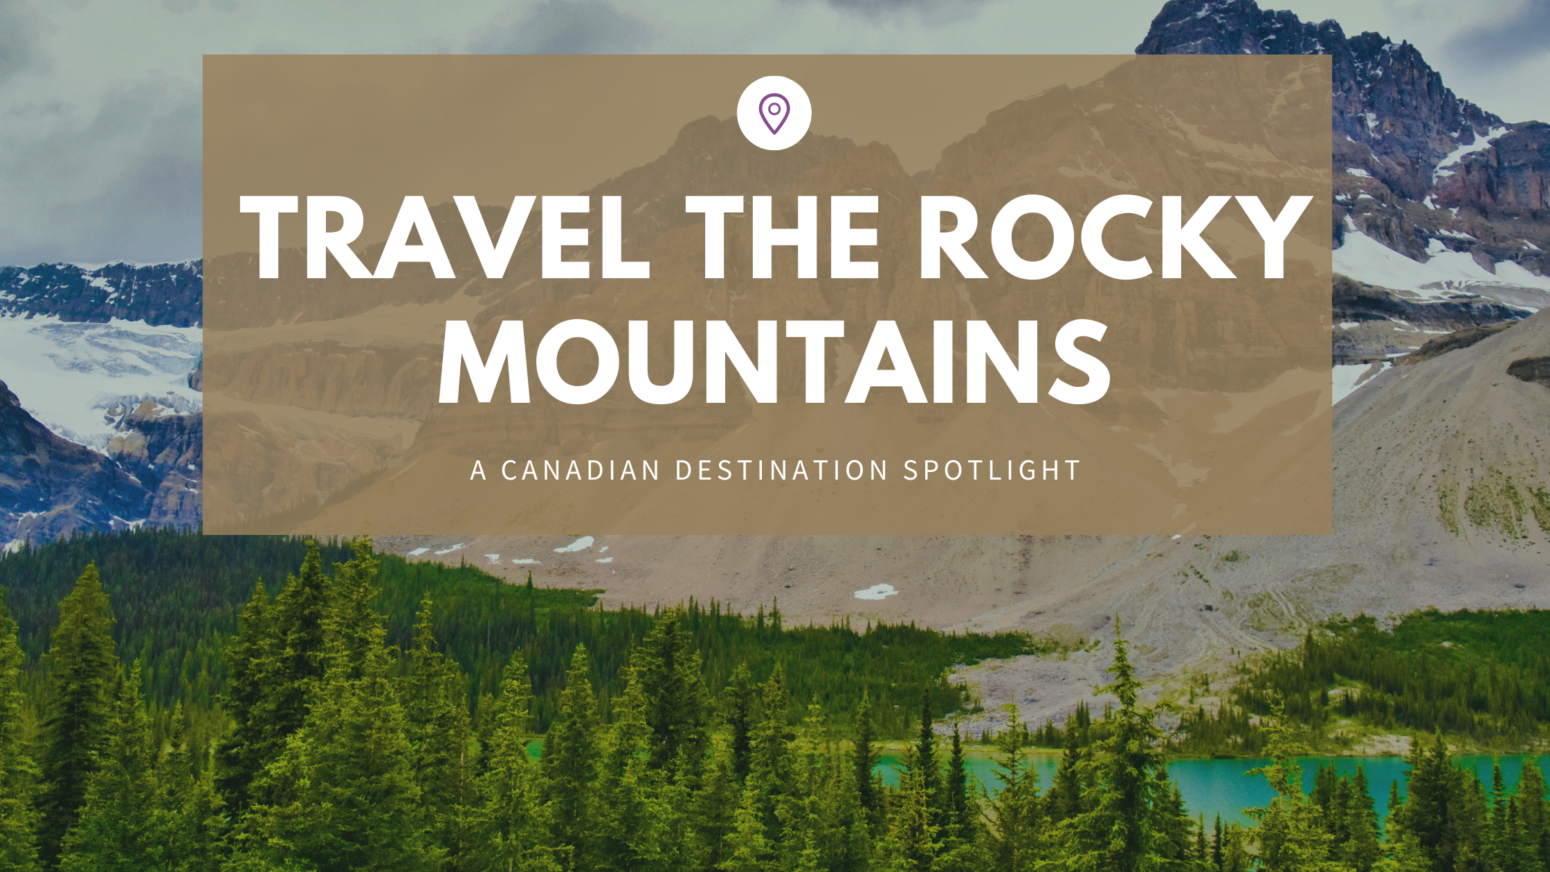 Travel the Rocky Mountains